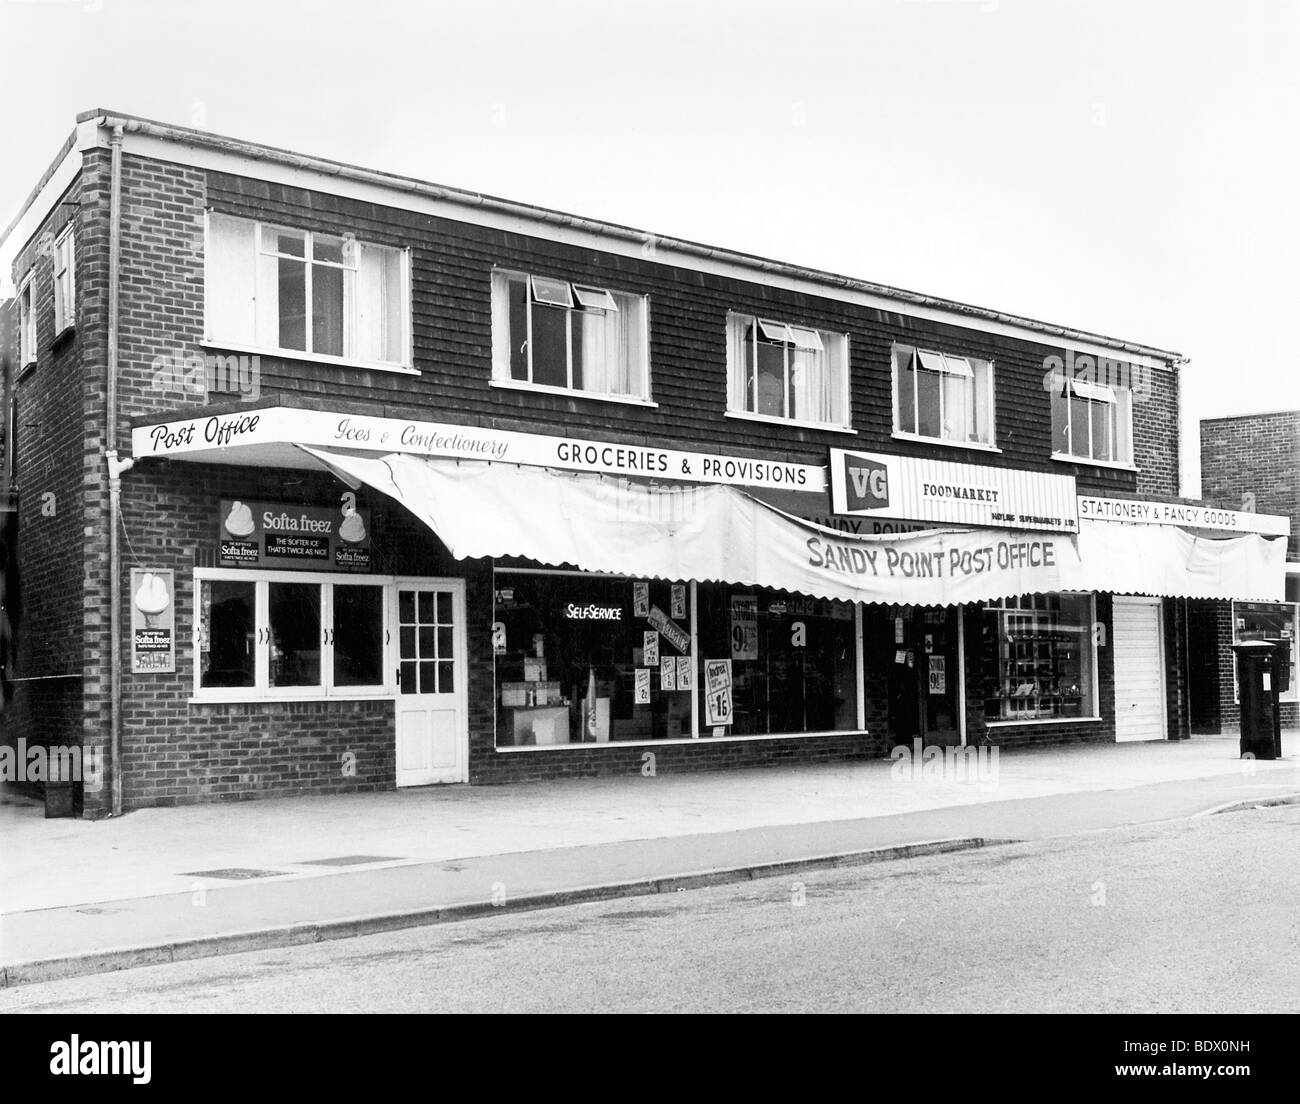 BEATLES : Hayling Island Supermarket was bought by John Lennon for ex-Quarryman Pete Shotton - photo taken in 1965 - Stock Image